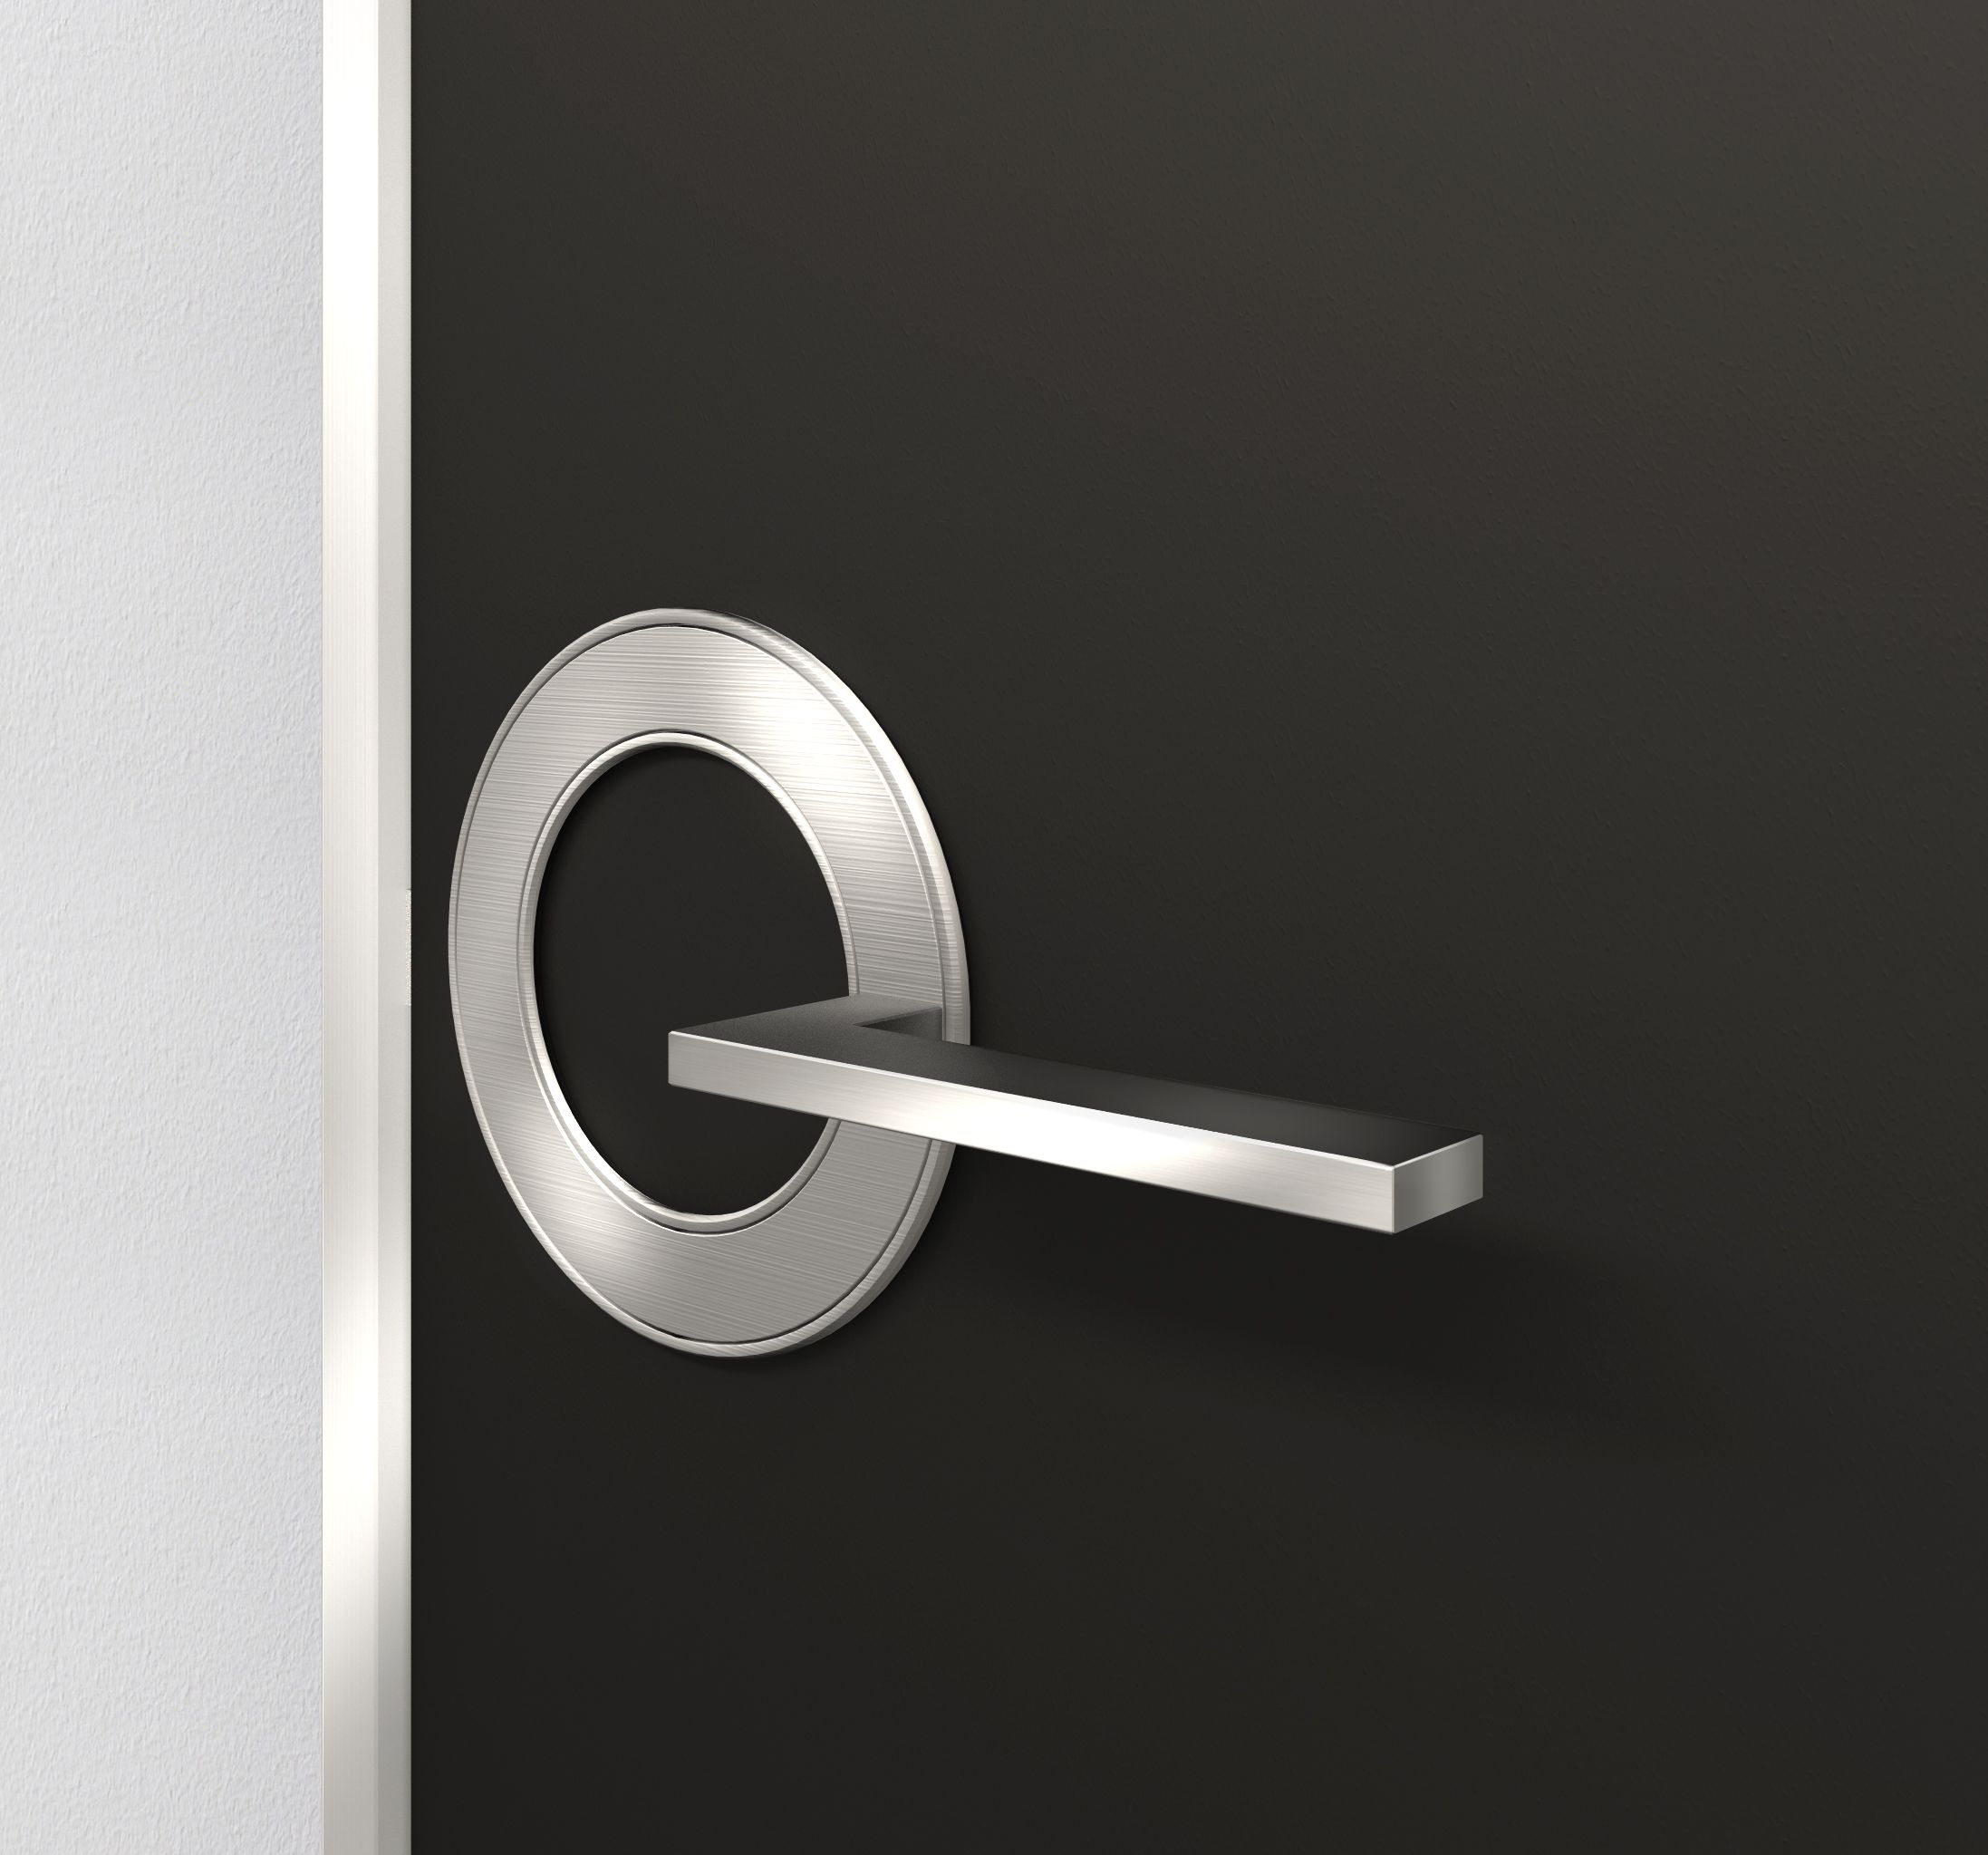 Le Meilleur The Orb Door Handle Like The Design And Concept Behind Ce Mois Ci